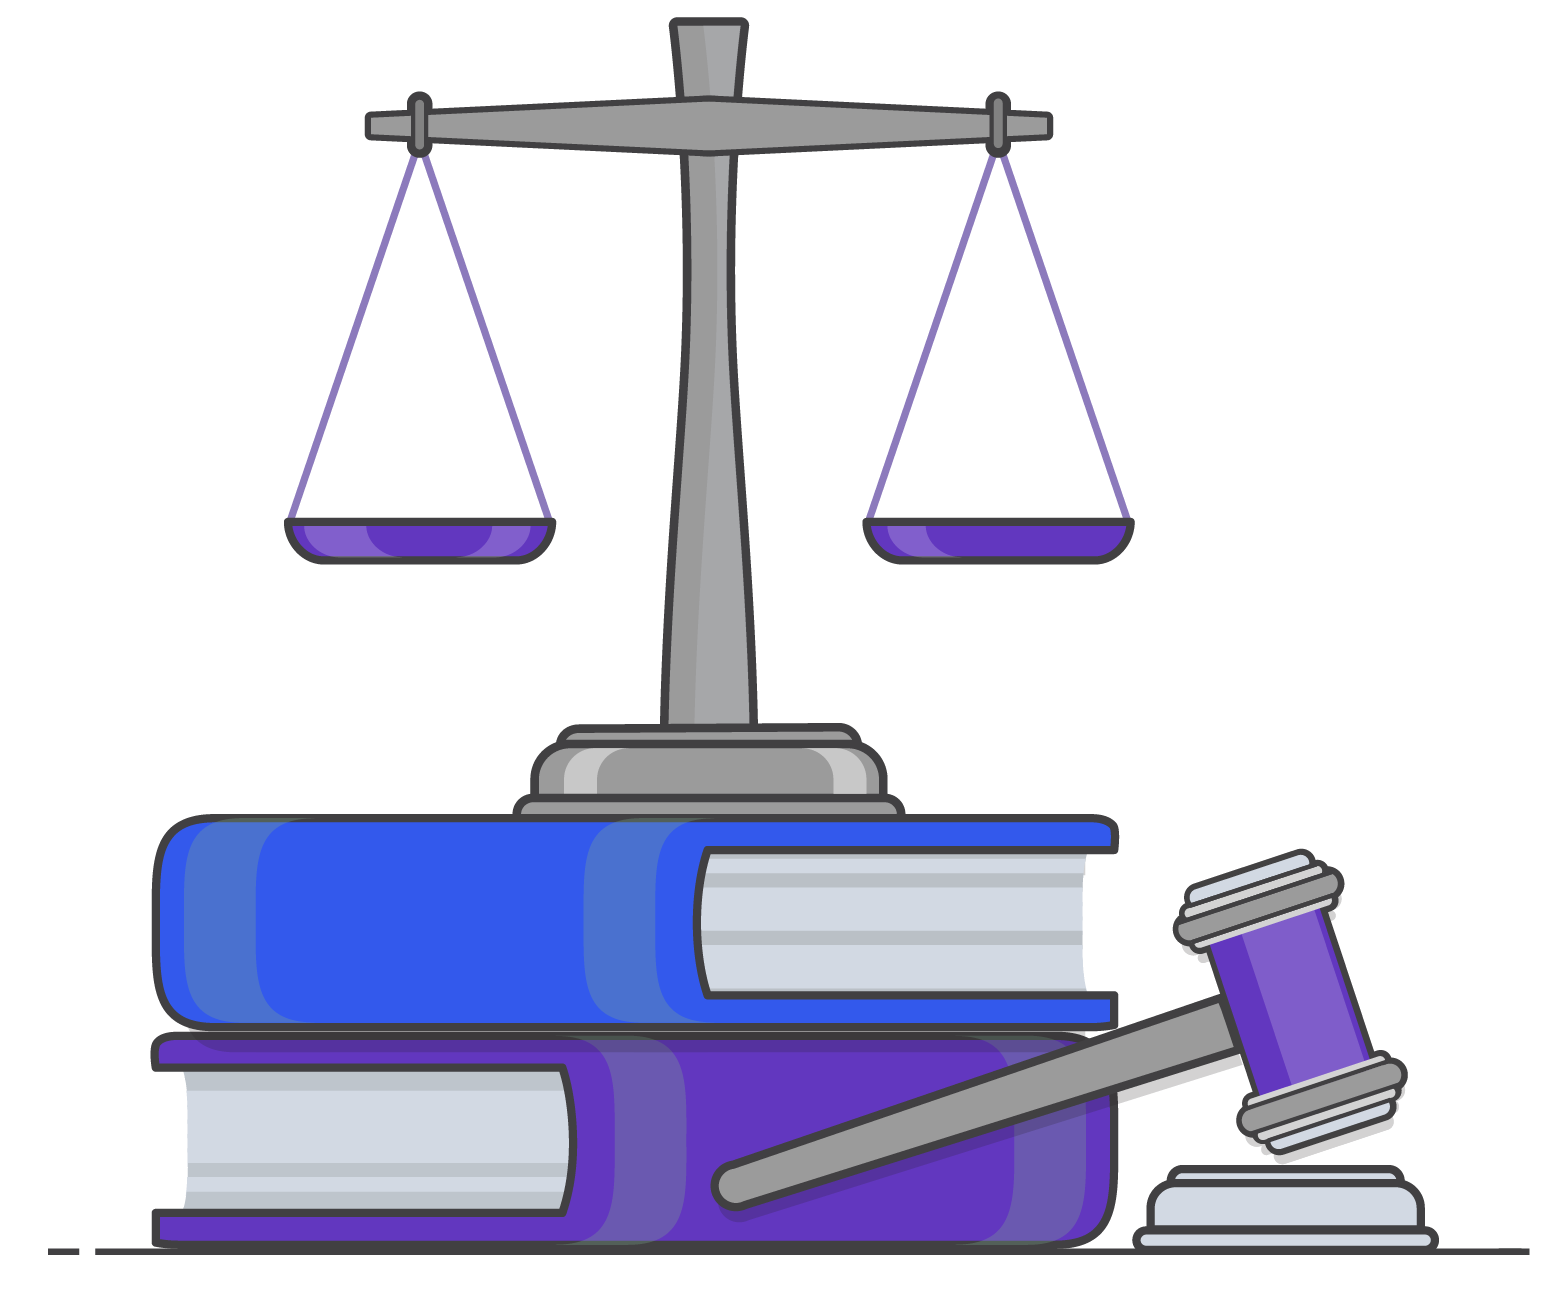 Court clipart don t judge. Why are website ada